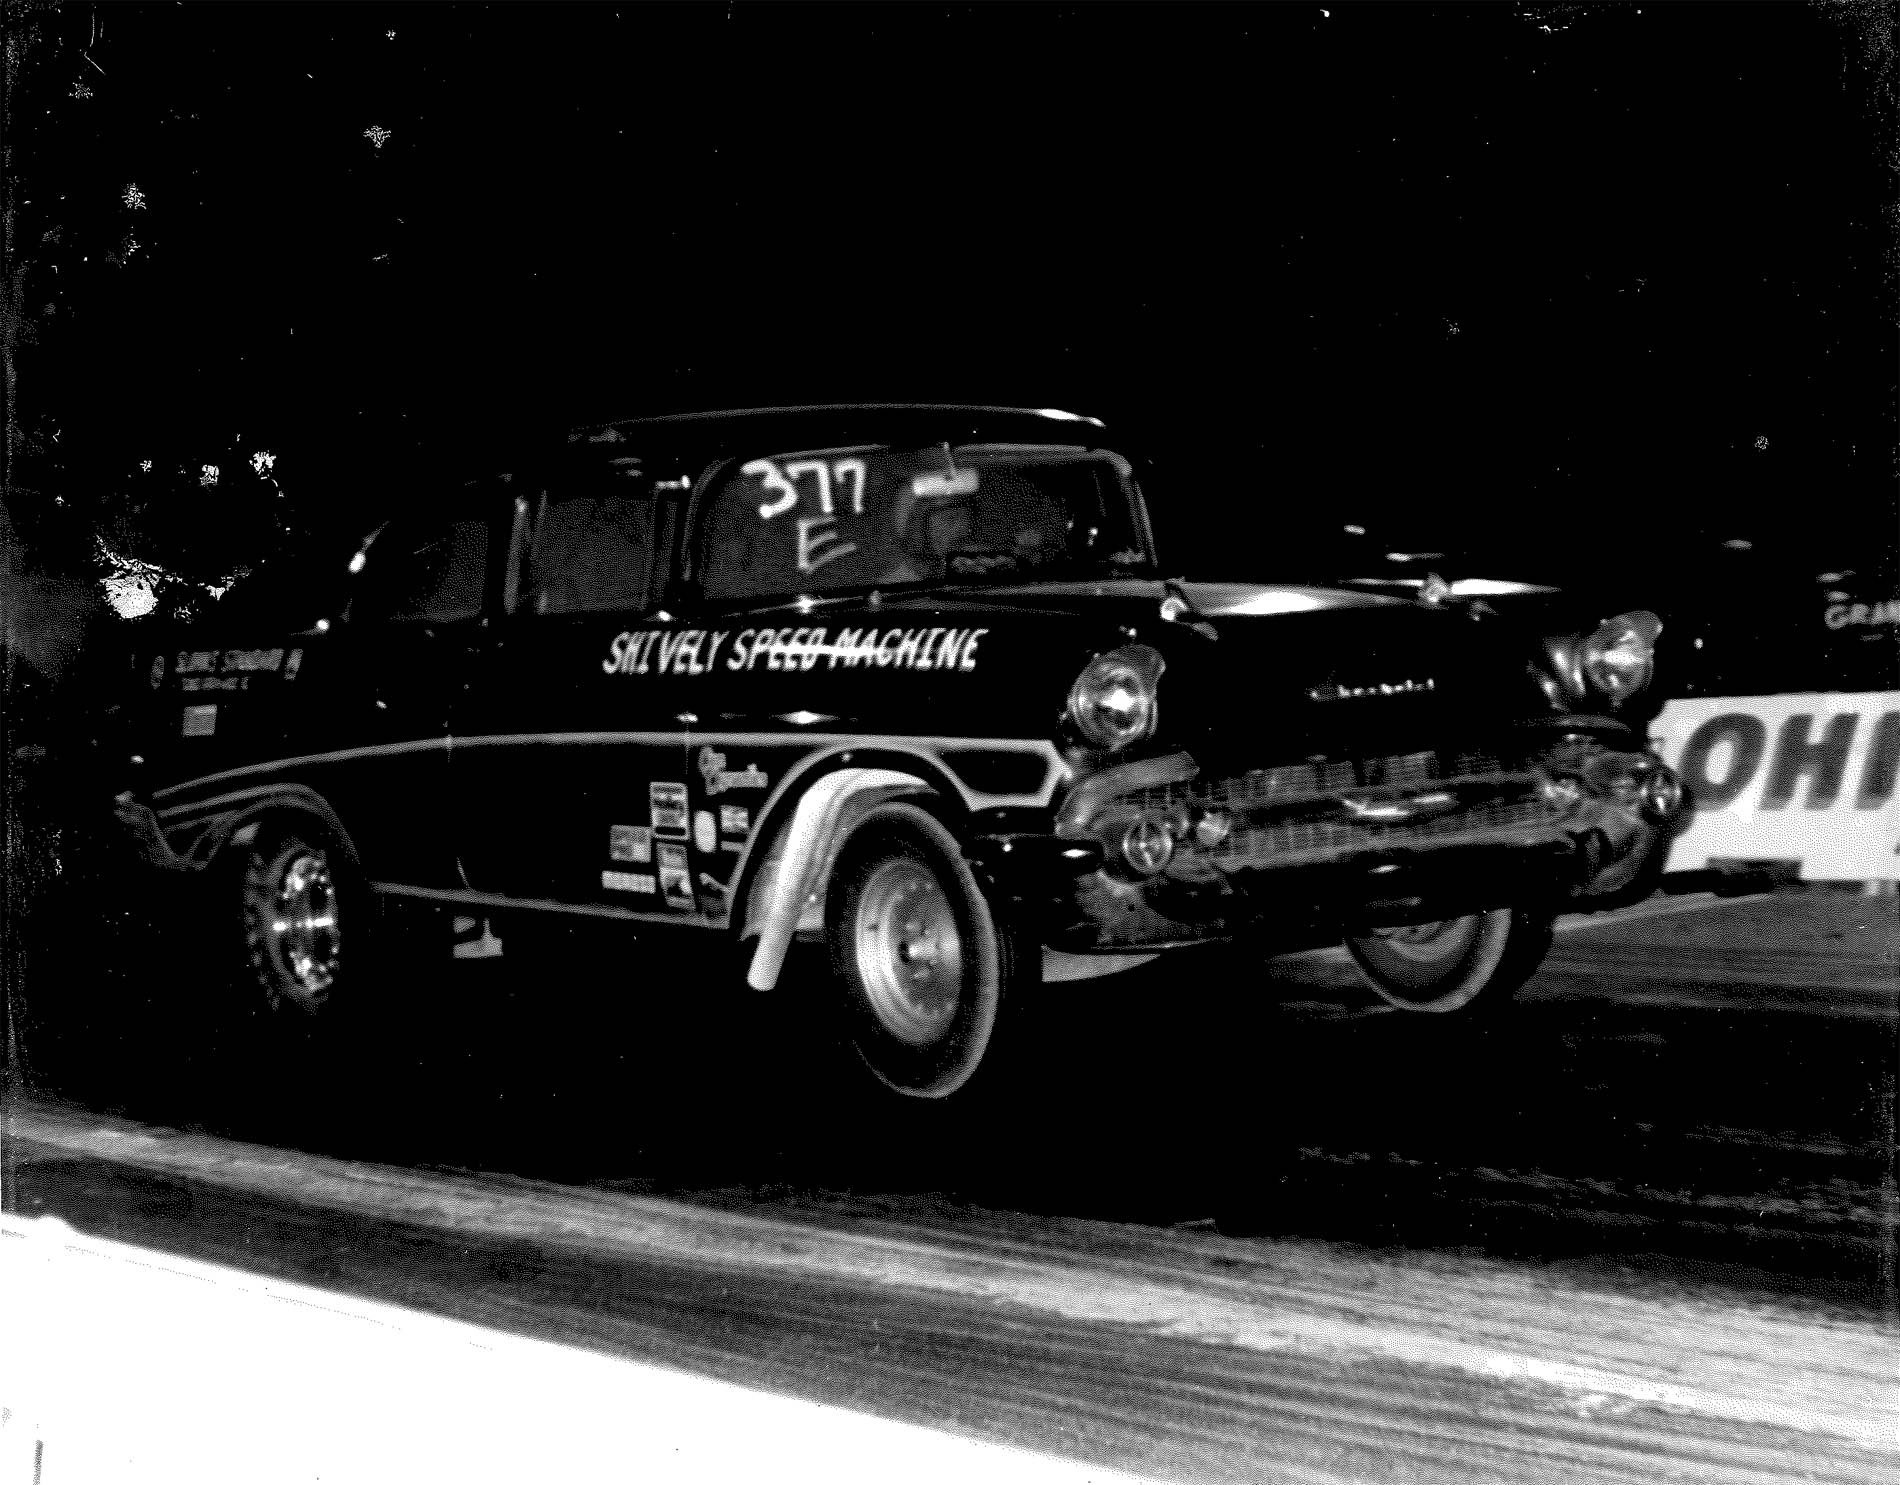 Shively Speed Machine vintage dragstrip photo